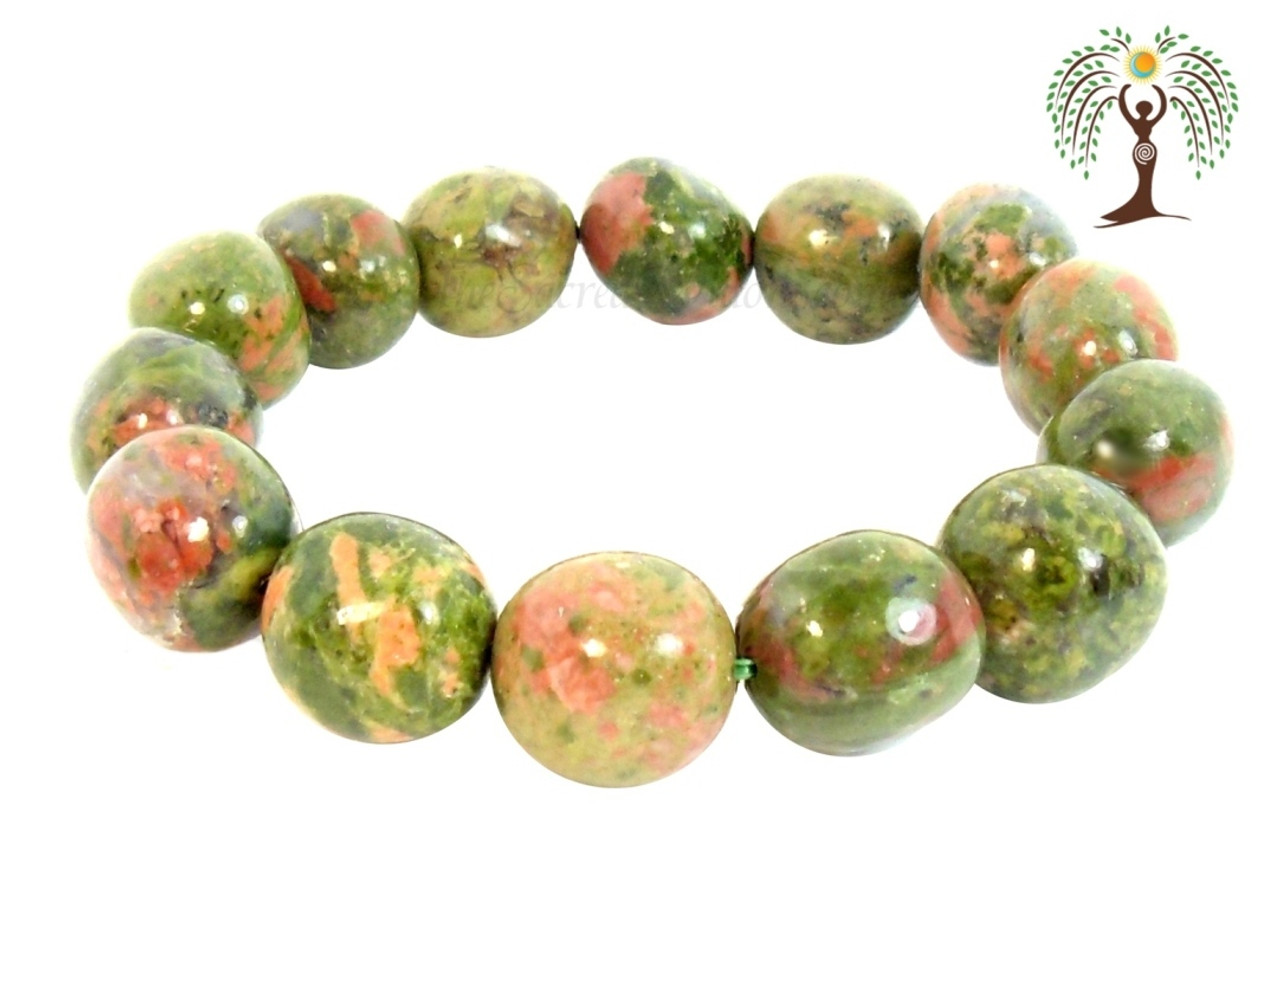 egg massage yoni charged unakite healing handmade crystal eggs gemstone reiki product decorative img